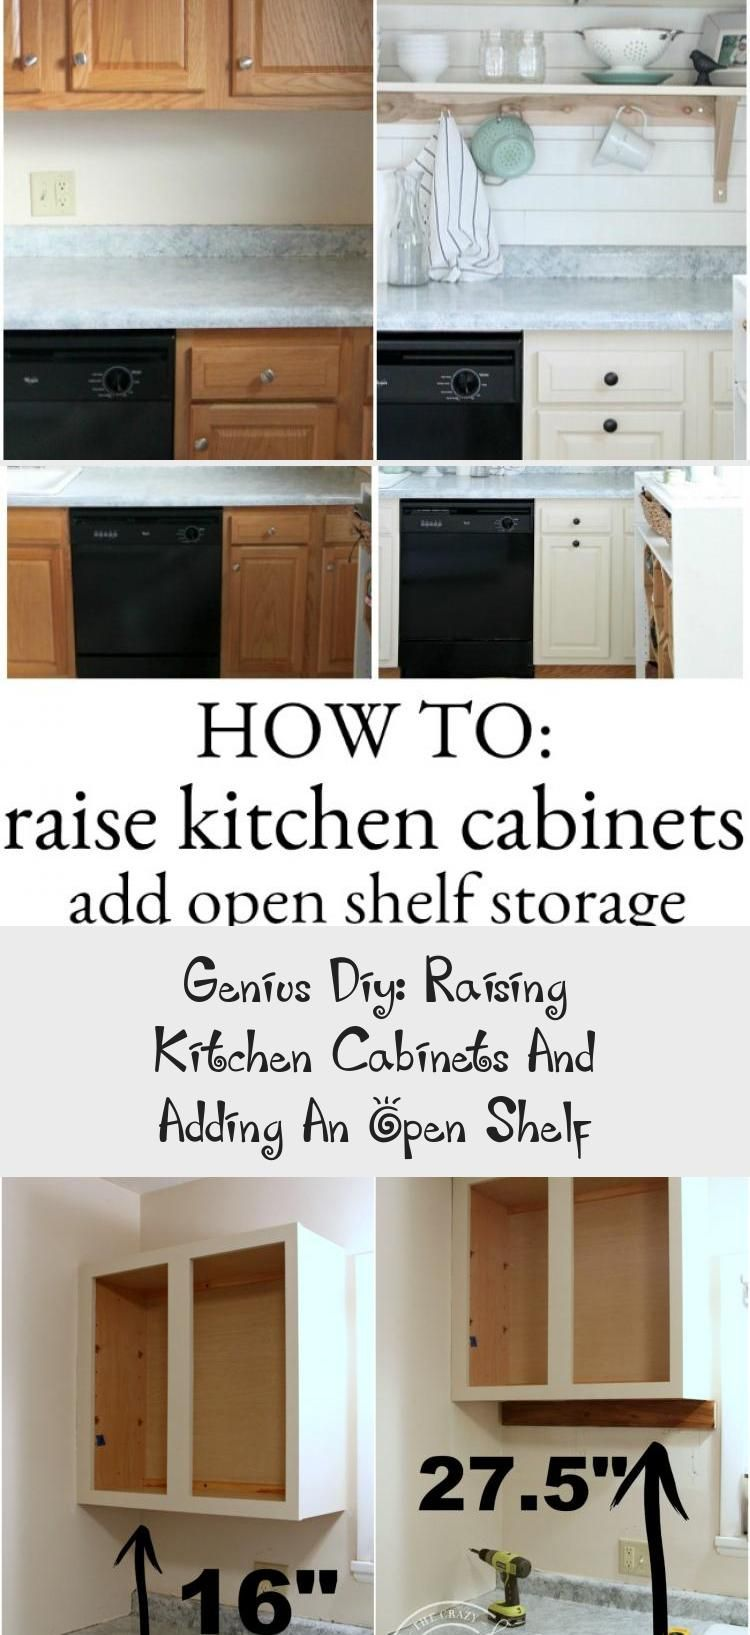 Learn How To Raise Kitchen Cabinets To The Ceiling And Add A Floating Shelf Underneath To Max In 2020 Small Kitchen Storage Diy Diy Kitchen Shelves Small Kitchen Decor